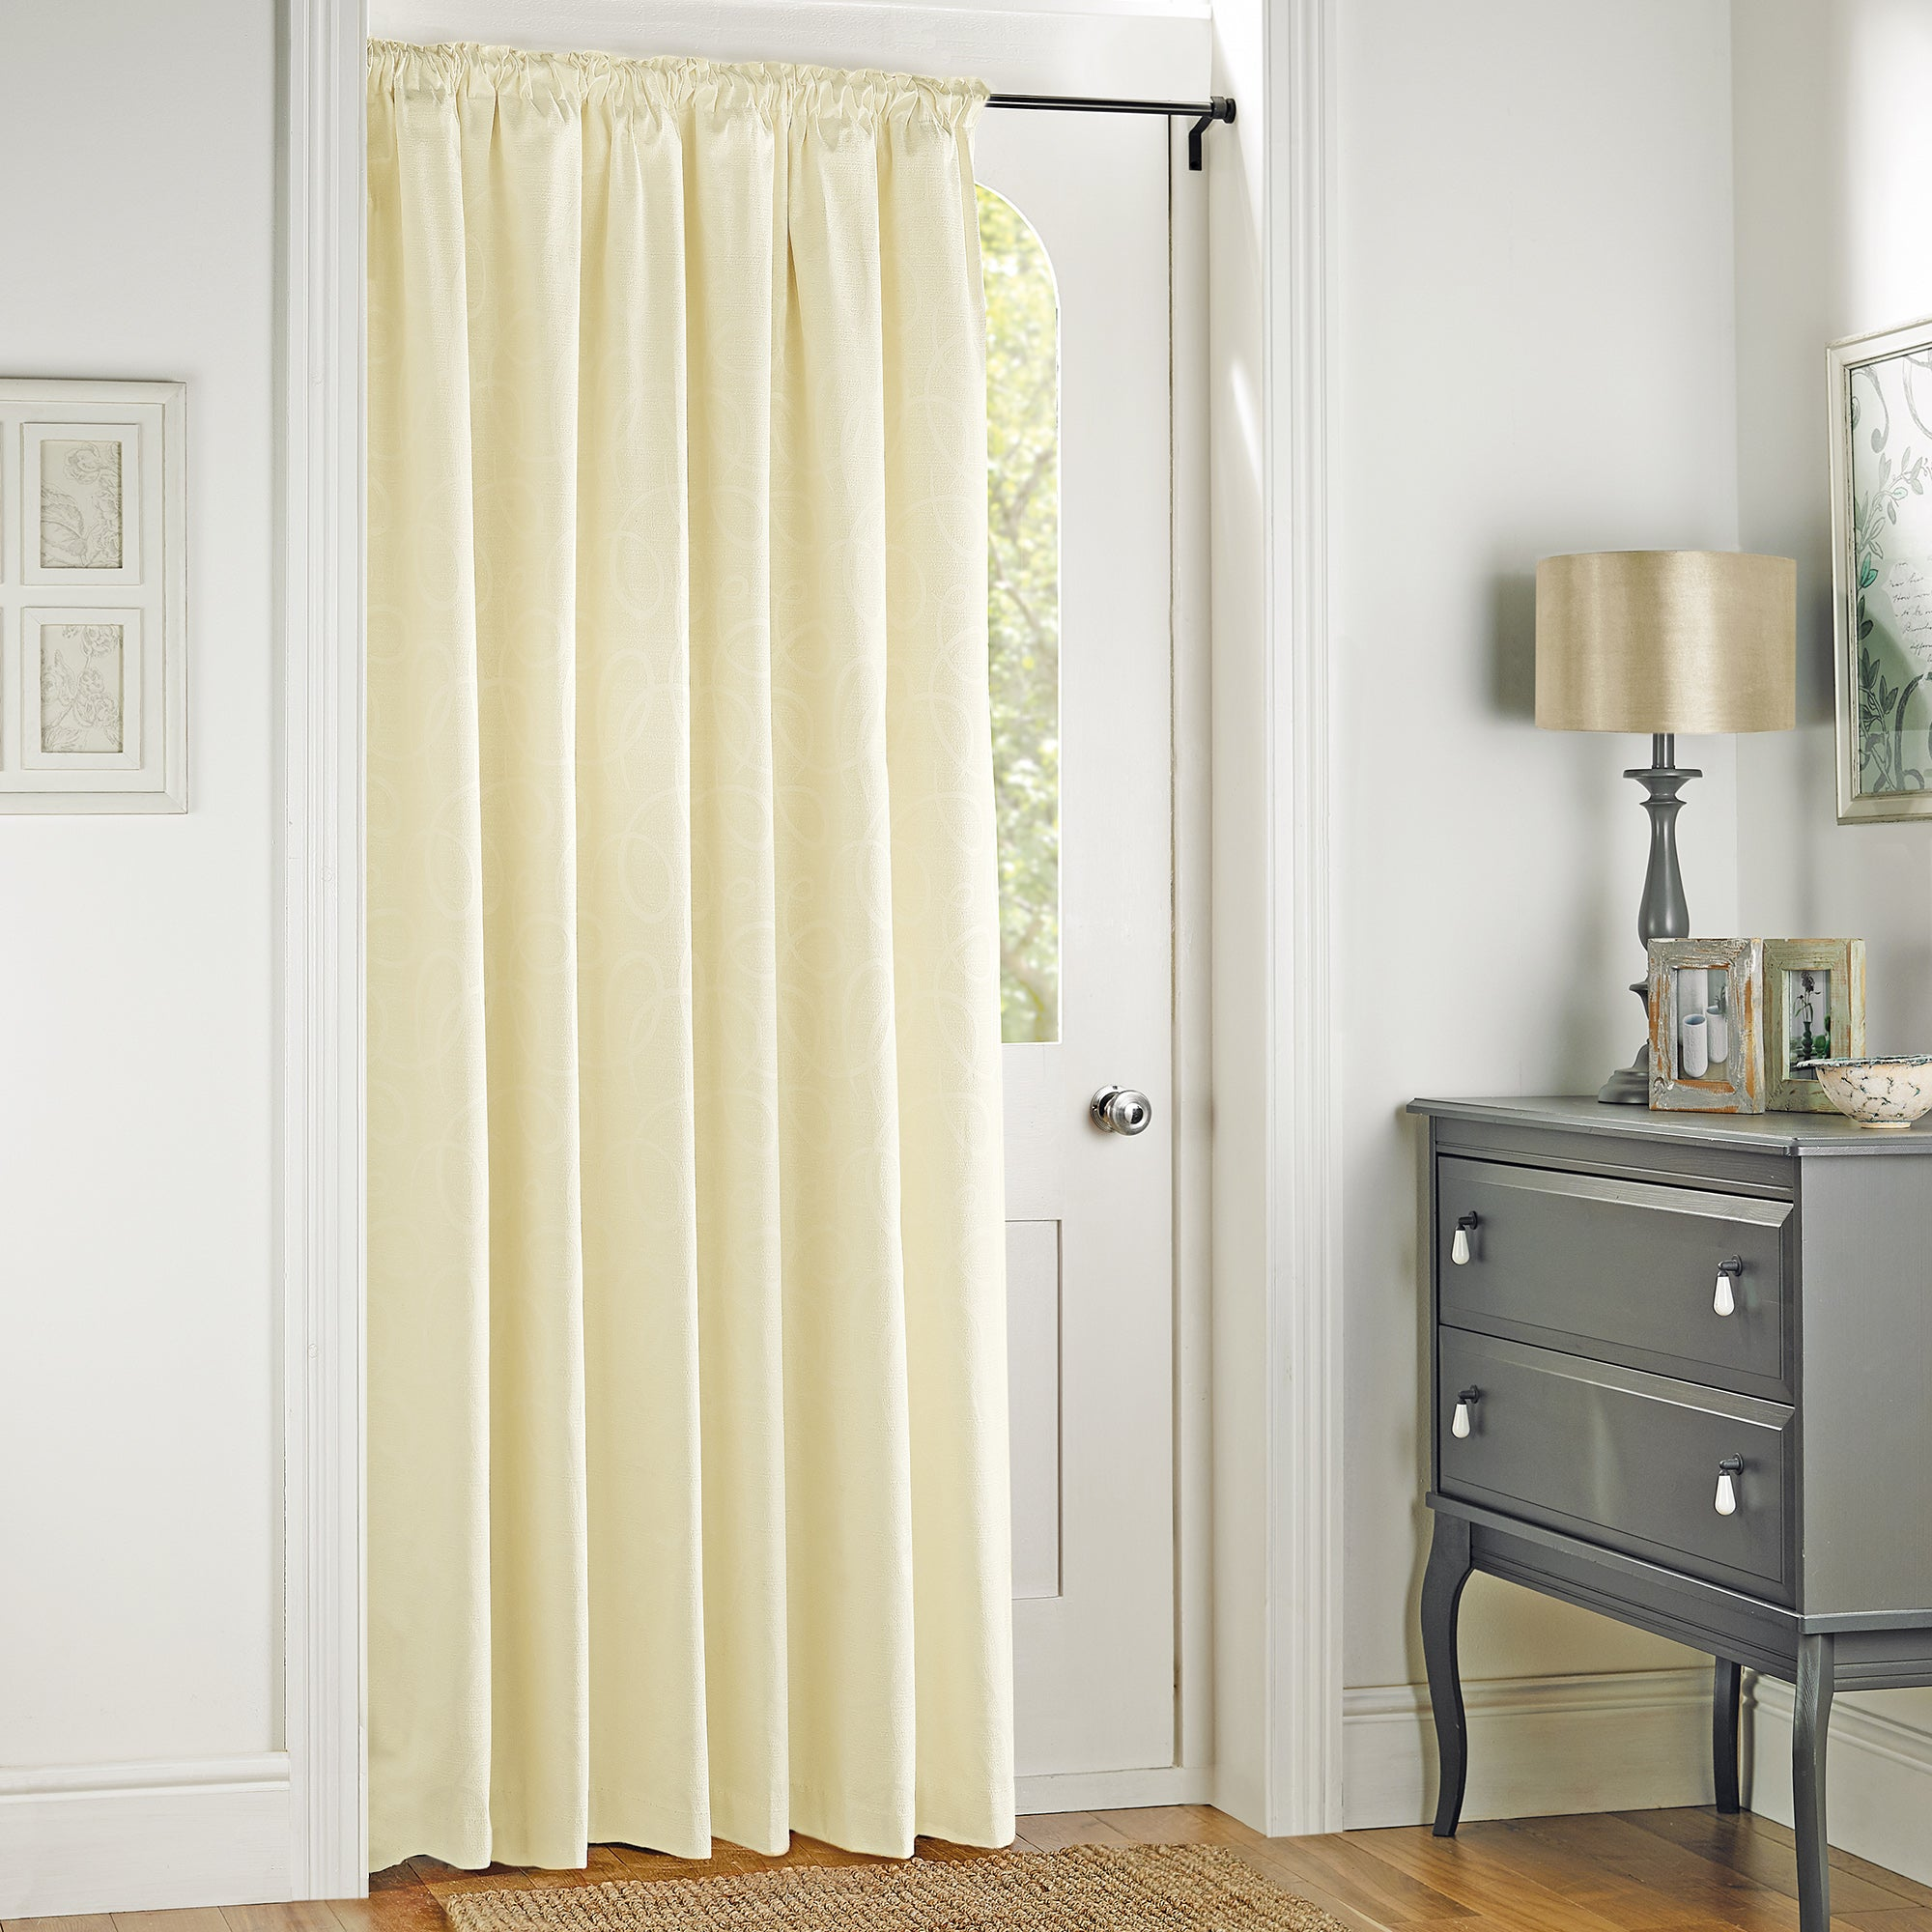 Cream Toledo Collection Door Curtain